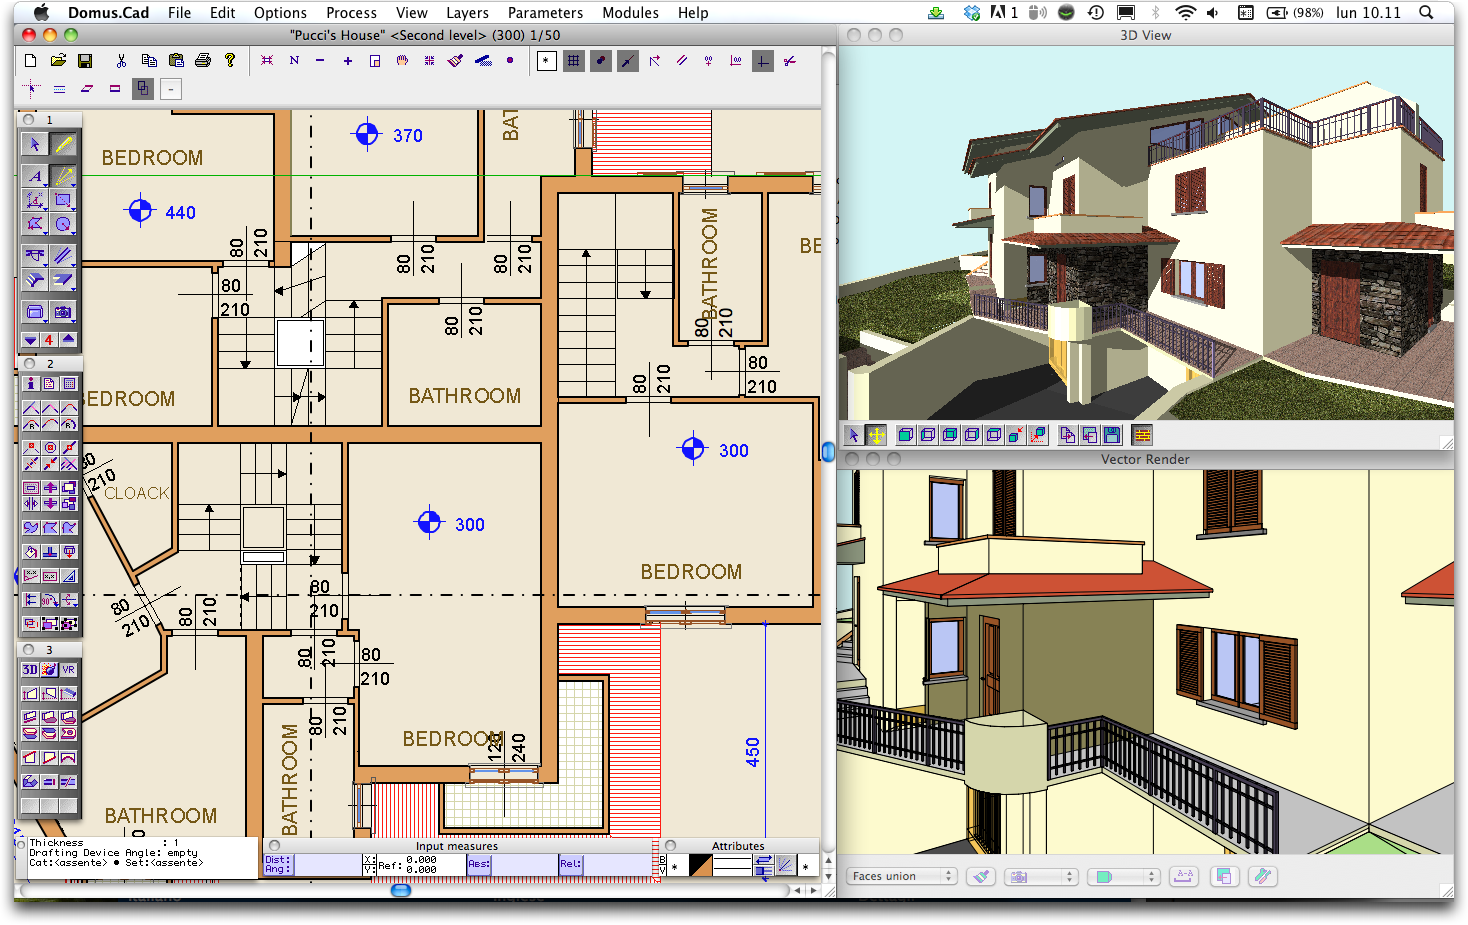 Domus cad pro g2 crowd 3d architecture software